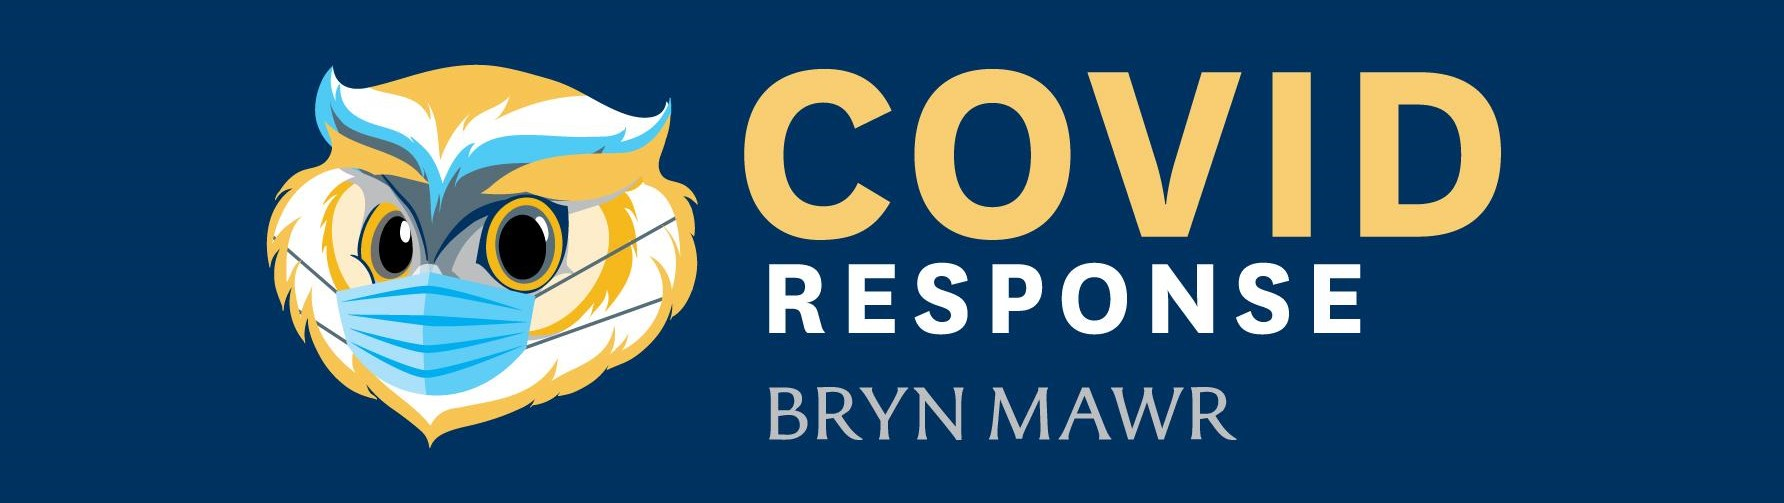 Bryn Mawr College Covid-19 official banner featuring cartoon owl wearing a facemask.